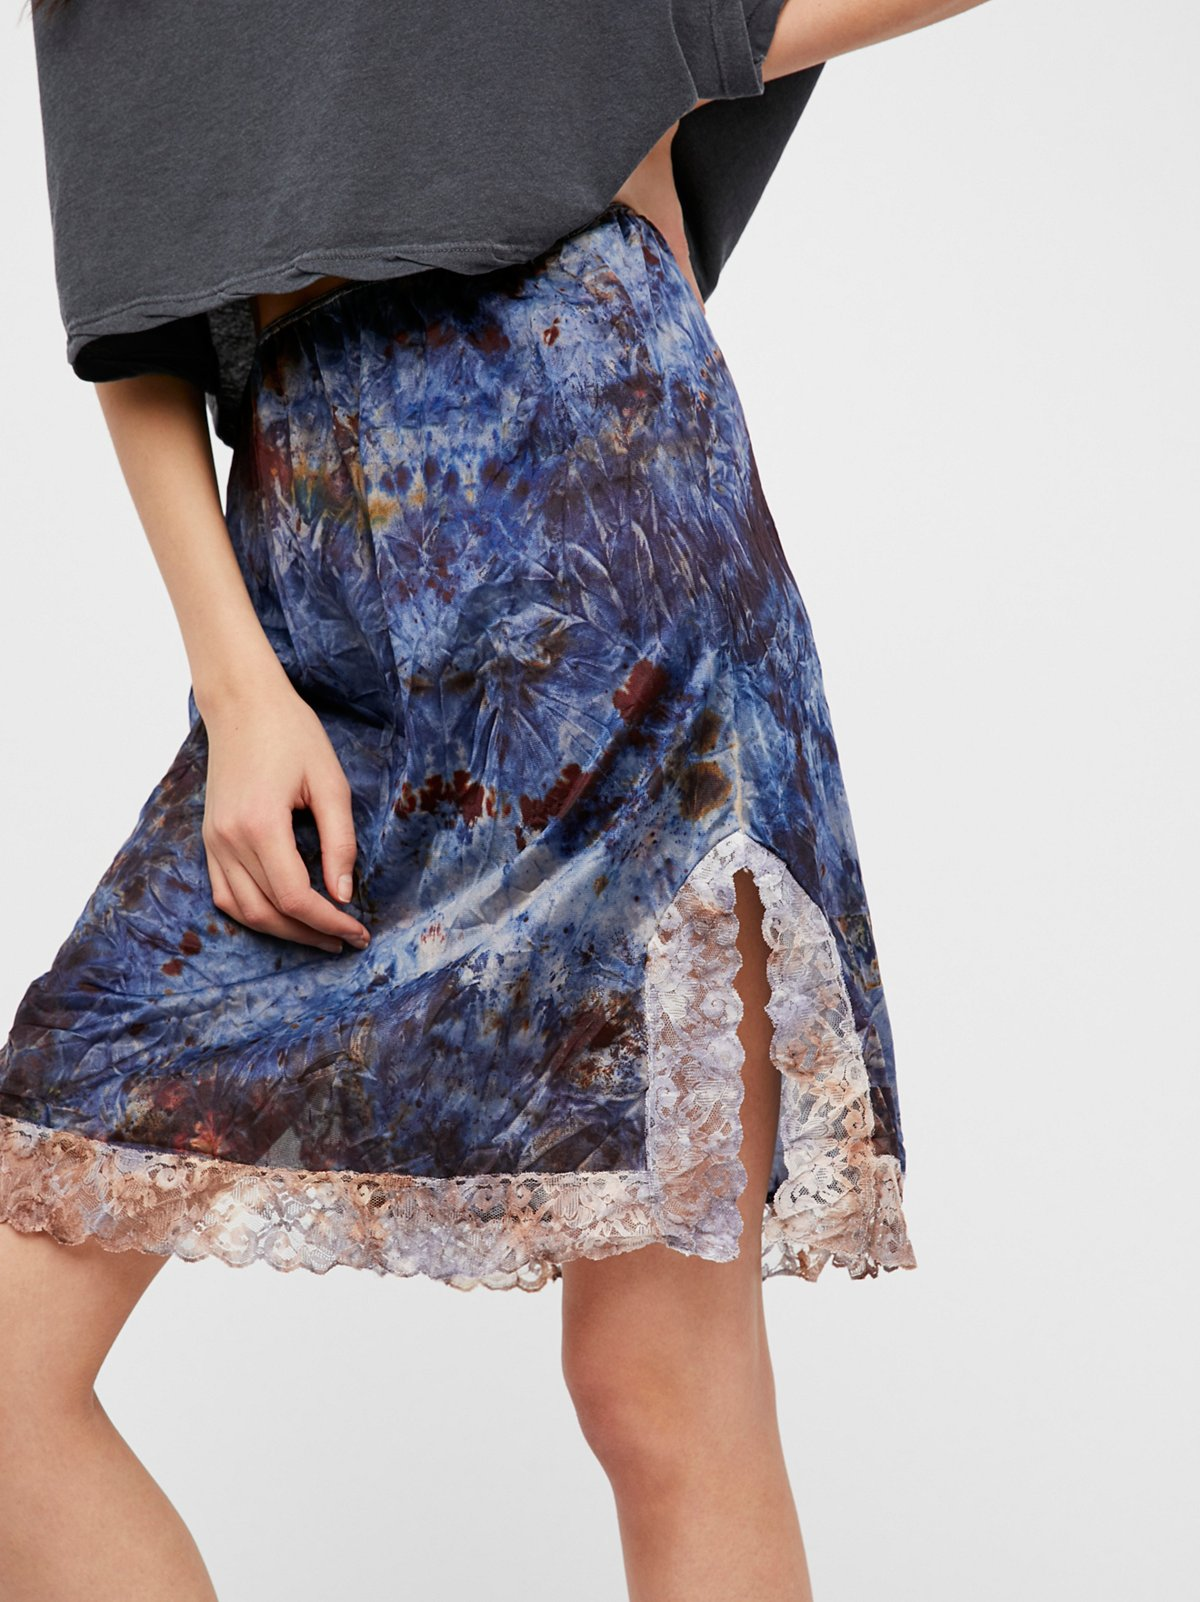 FP Vintage Revival Over Dyed Petticoat